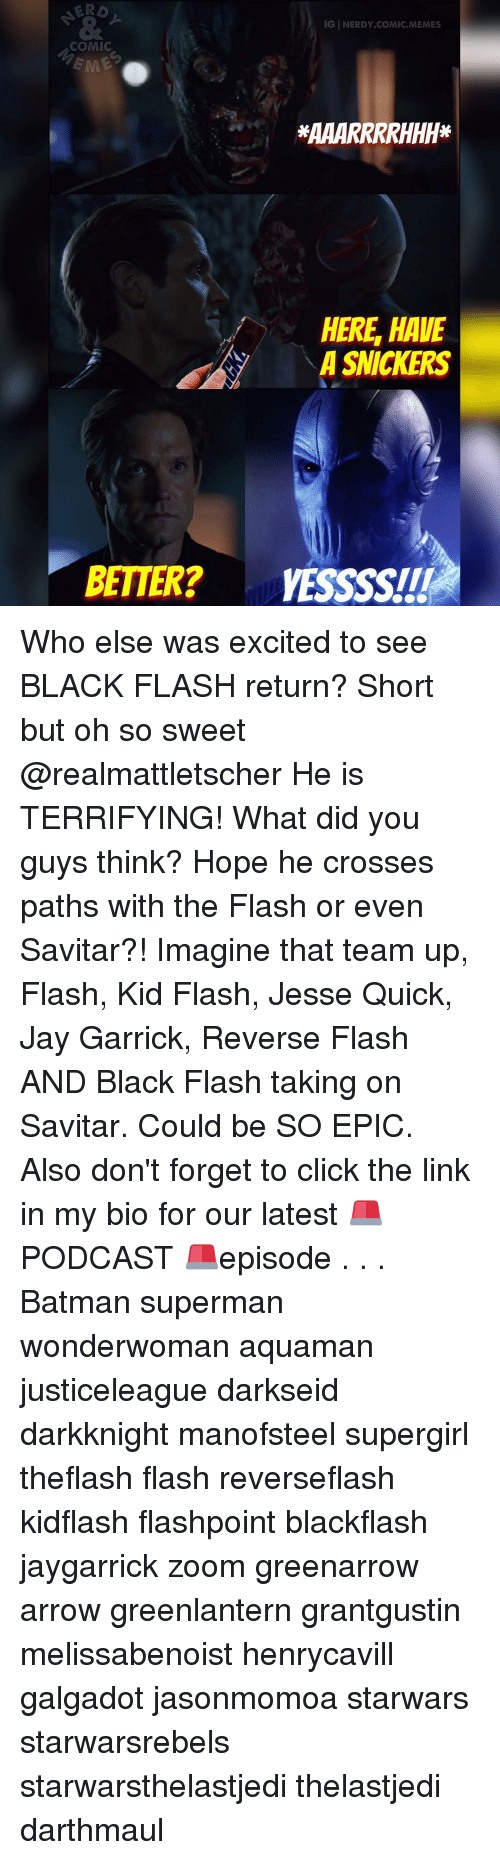 Excits: IGINERDY COMIC MEMES  COMIC  HERE HAVE  A SNICKERS  BETTER? VESSSSITI Who else was excited to see BLACK FLASH return? Short but oh so sweet @realmattletscher He is TERRIFYING! What did you guys think? Hope he crosses paths with the Flash or even Savitar?! Imagine that team up, Flash, Kid Flash, Jesse Quick, Jay Garrick, Reverse Flash AND Black Flash taking on Savitar. Could be SO EPIC. Also don't forget to click the link in my bio for our latest 🚨PODCAST 🚨episode . . . Batman superman wonderwoman aquaman justiceleague darkseid darkknight manofsteel supergirl theflash flash reverseflash kidflash flashpoint blackflash jaygarrick zoom greenarrow arrow greenlantern grantgustin melissabenoist henrycavill galgadot jasonmomoa starwars starwarsrebels starwarsthelastjedi thelastjedi darthmaul